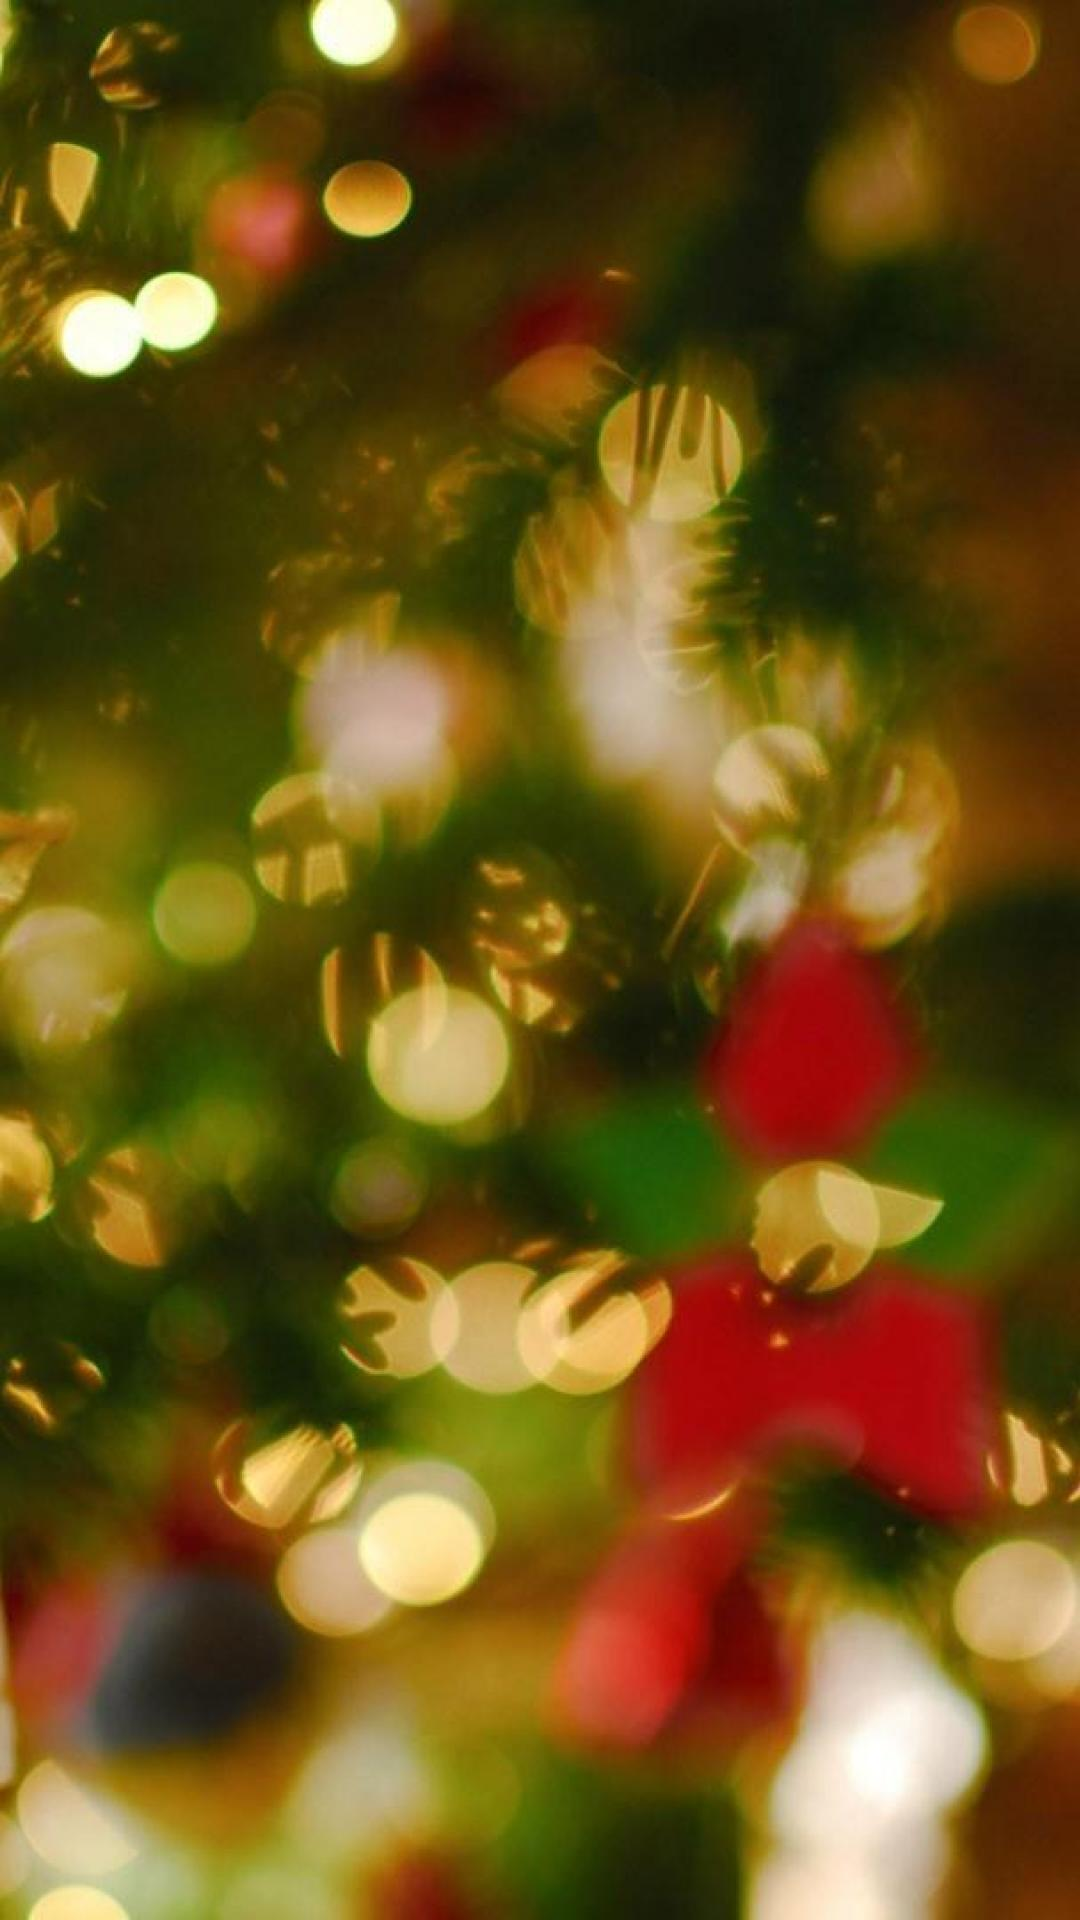 1080x1920-decoration_christmas_decorations_light_holidays_christmas